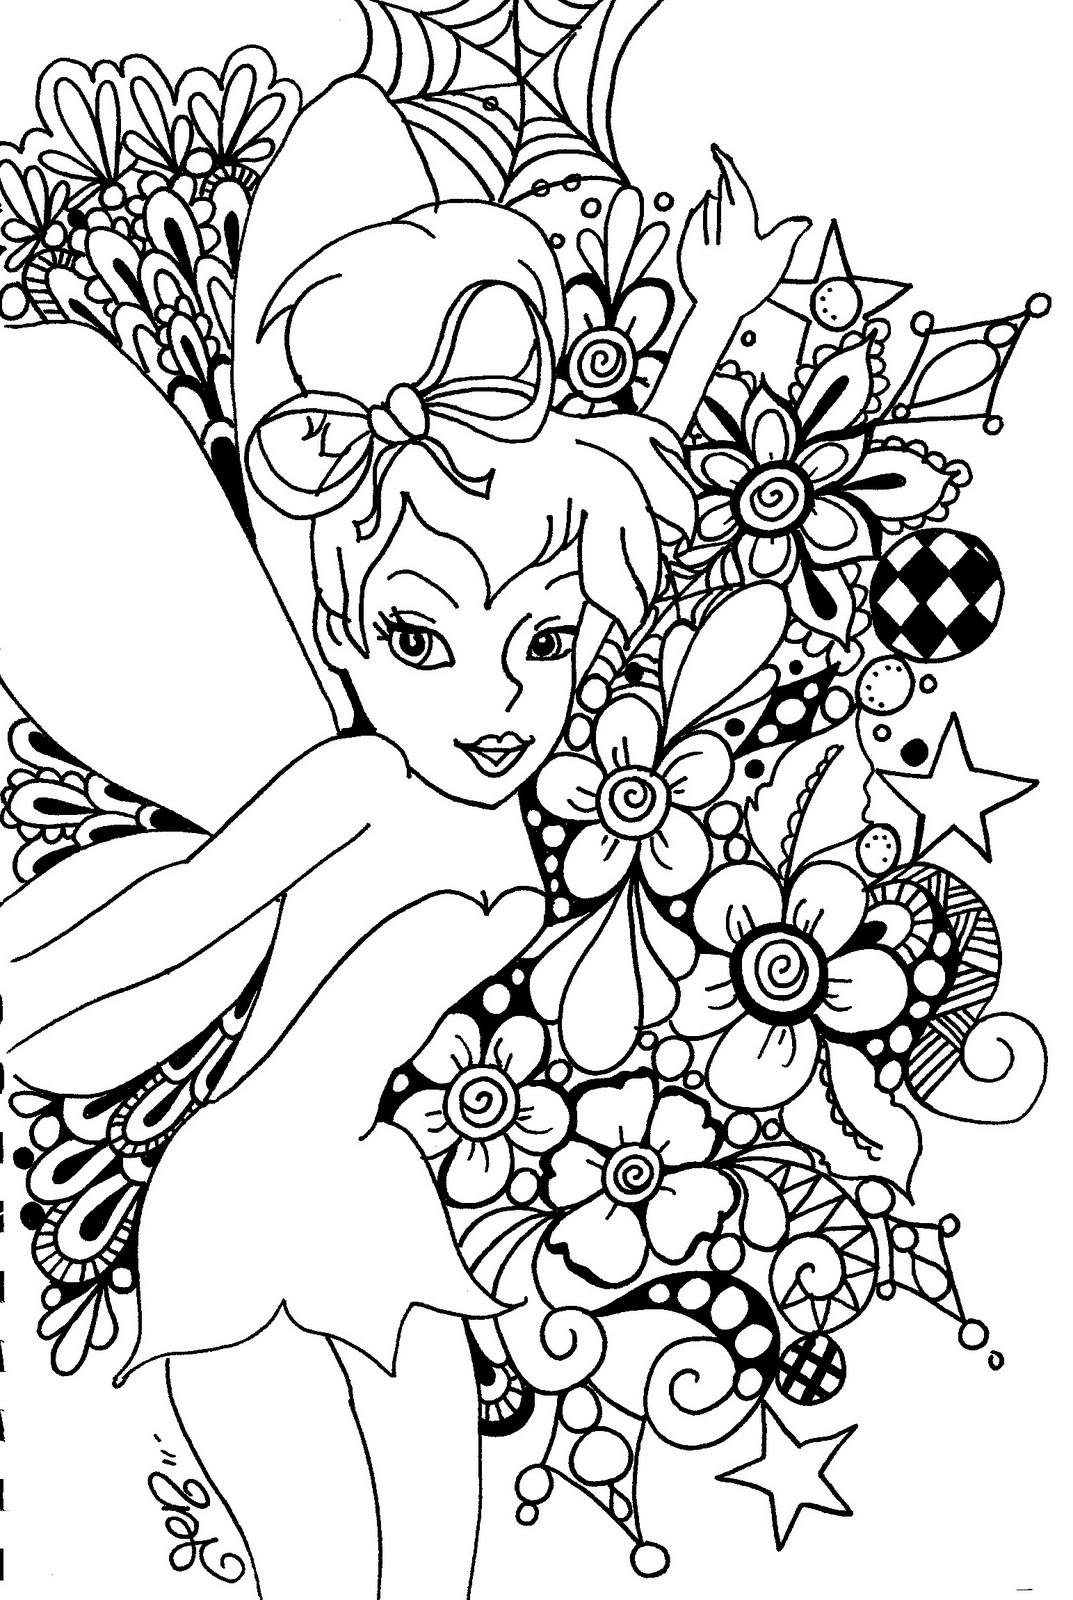 fairy coloring pages. Black Bedroom Furniture Sets. Home Design Ideas